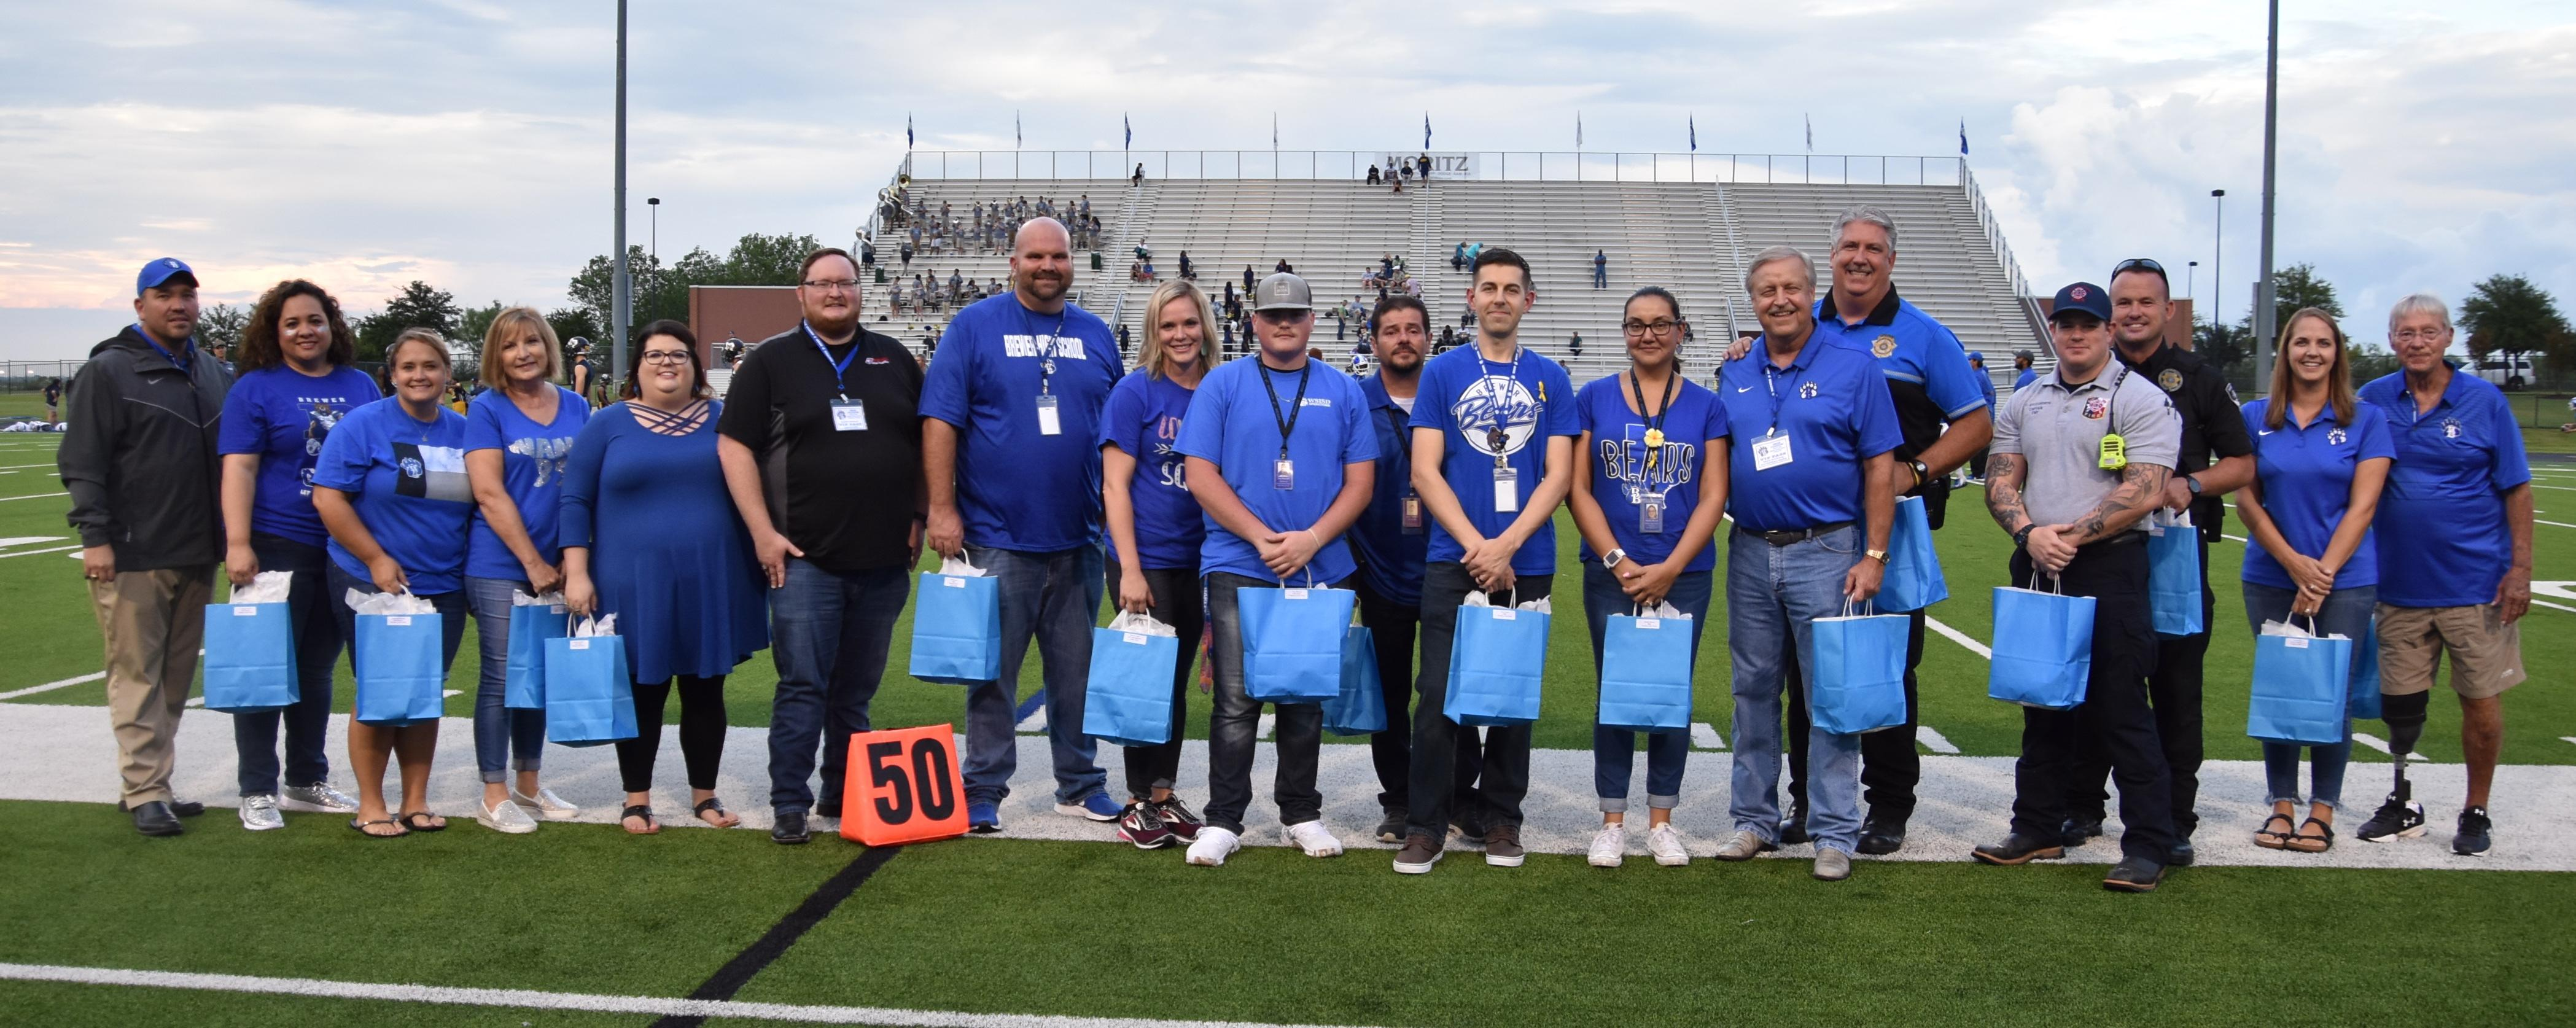 Brewer Bear of the Week Award Sept. 14 recipients